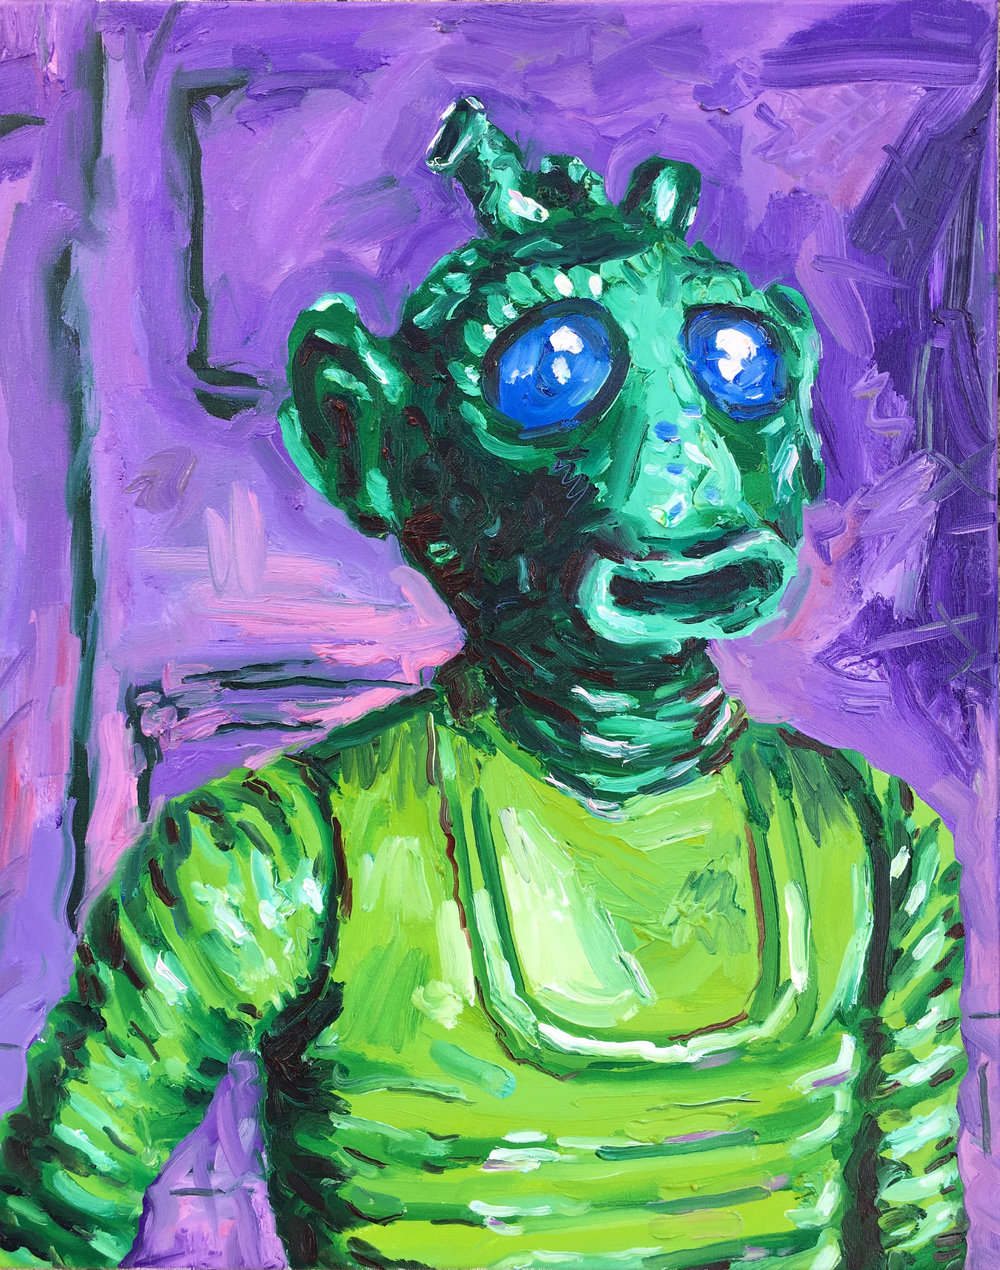 Untitled (1977 Greedo 2)